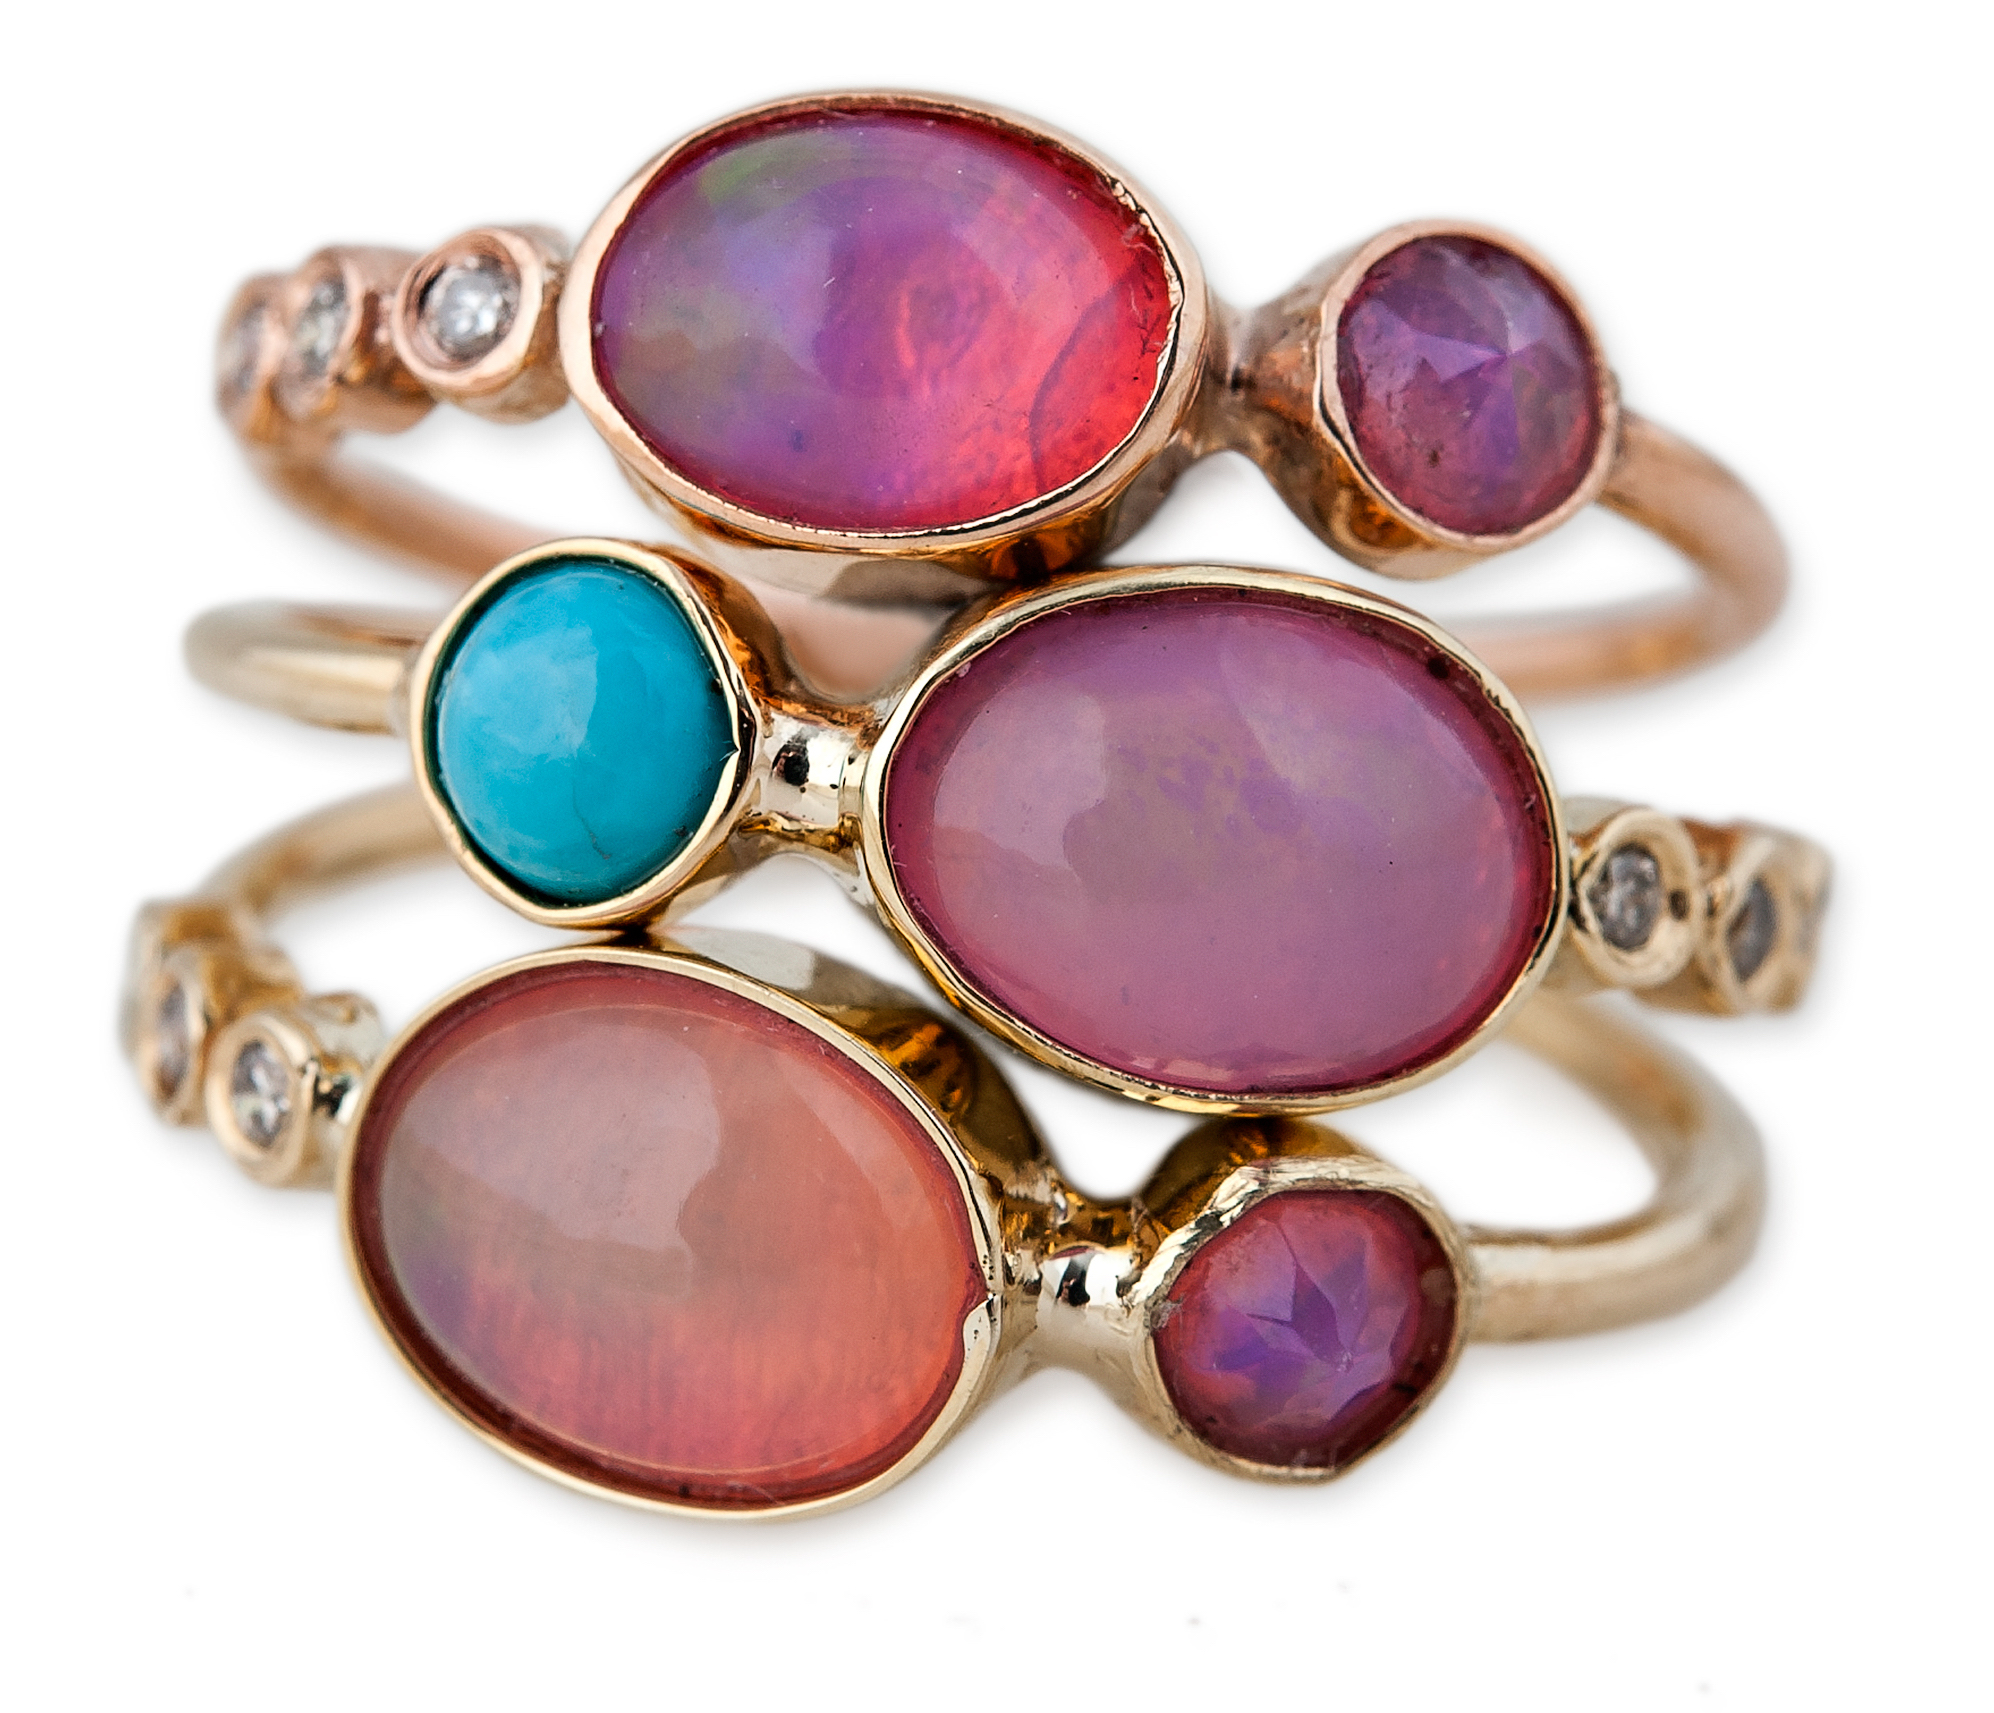 Jacquie Aiche stacking rings   JCK On Your Market